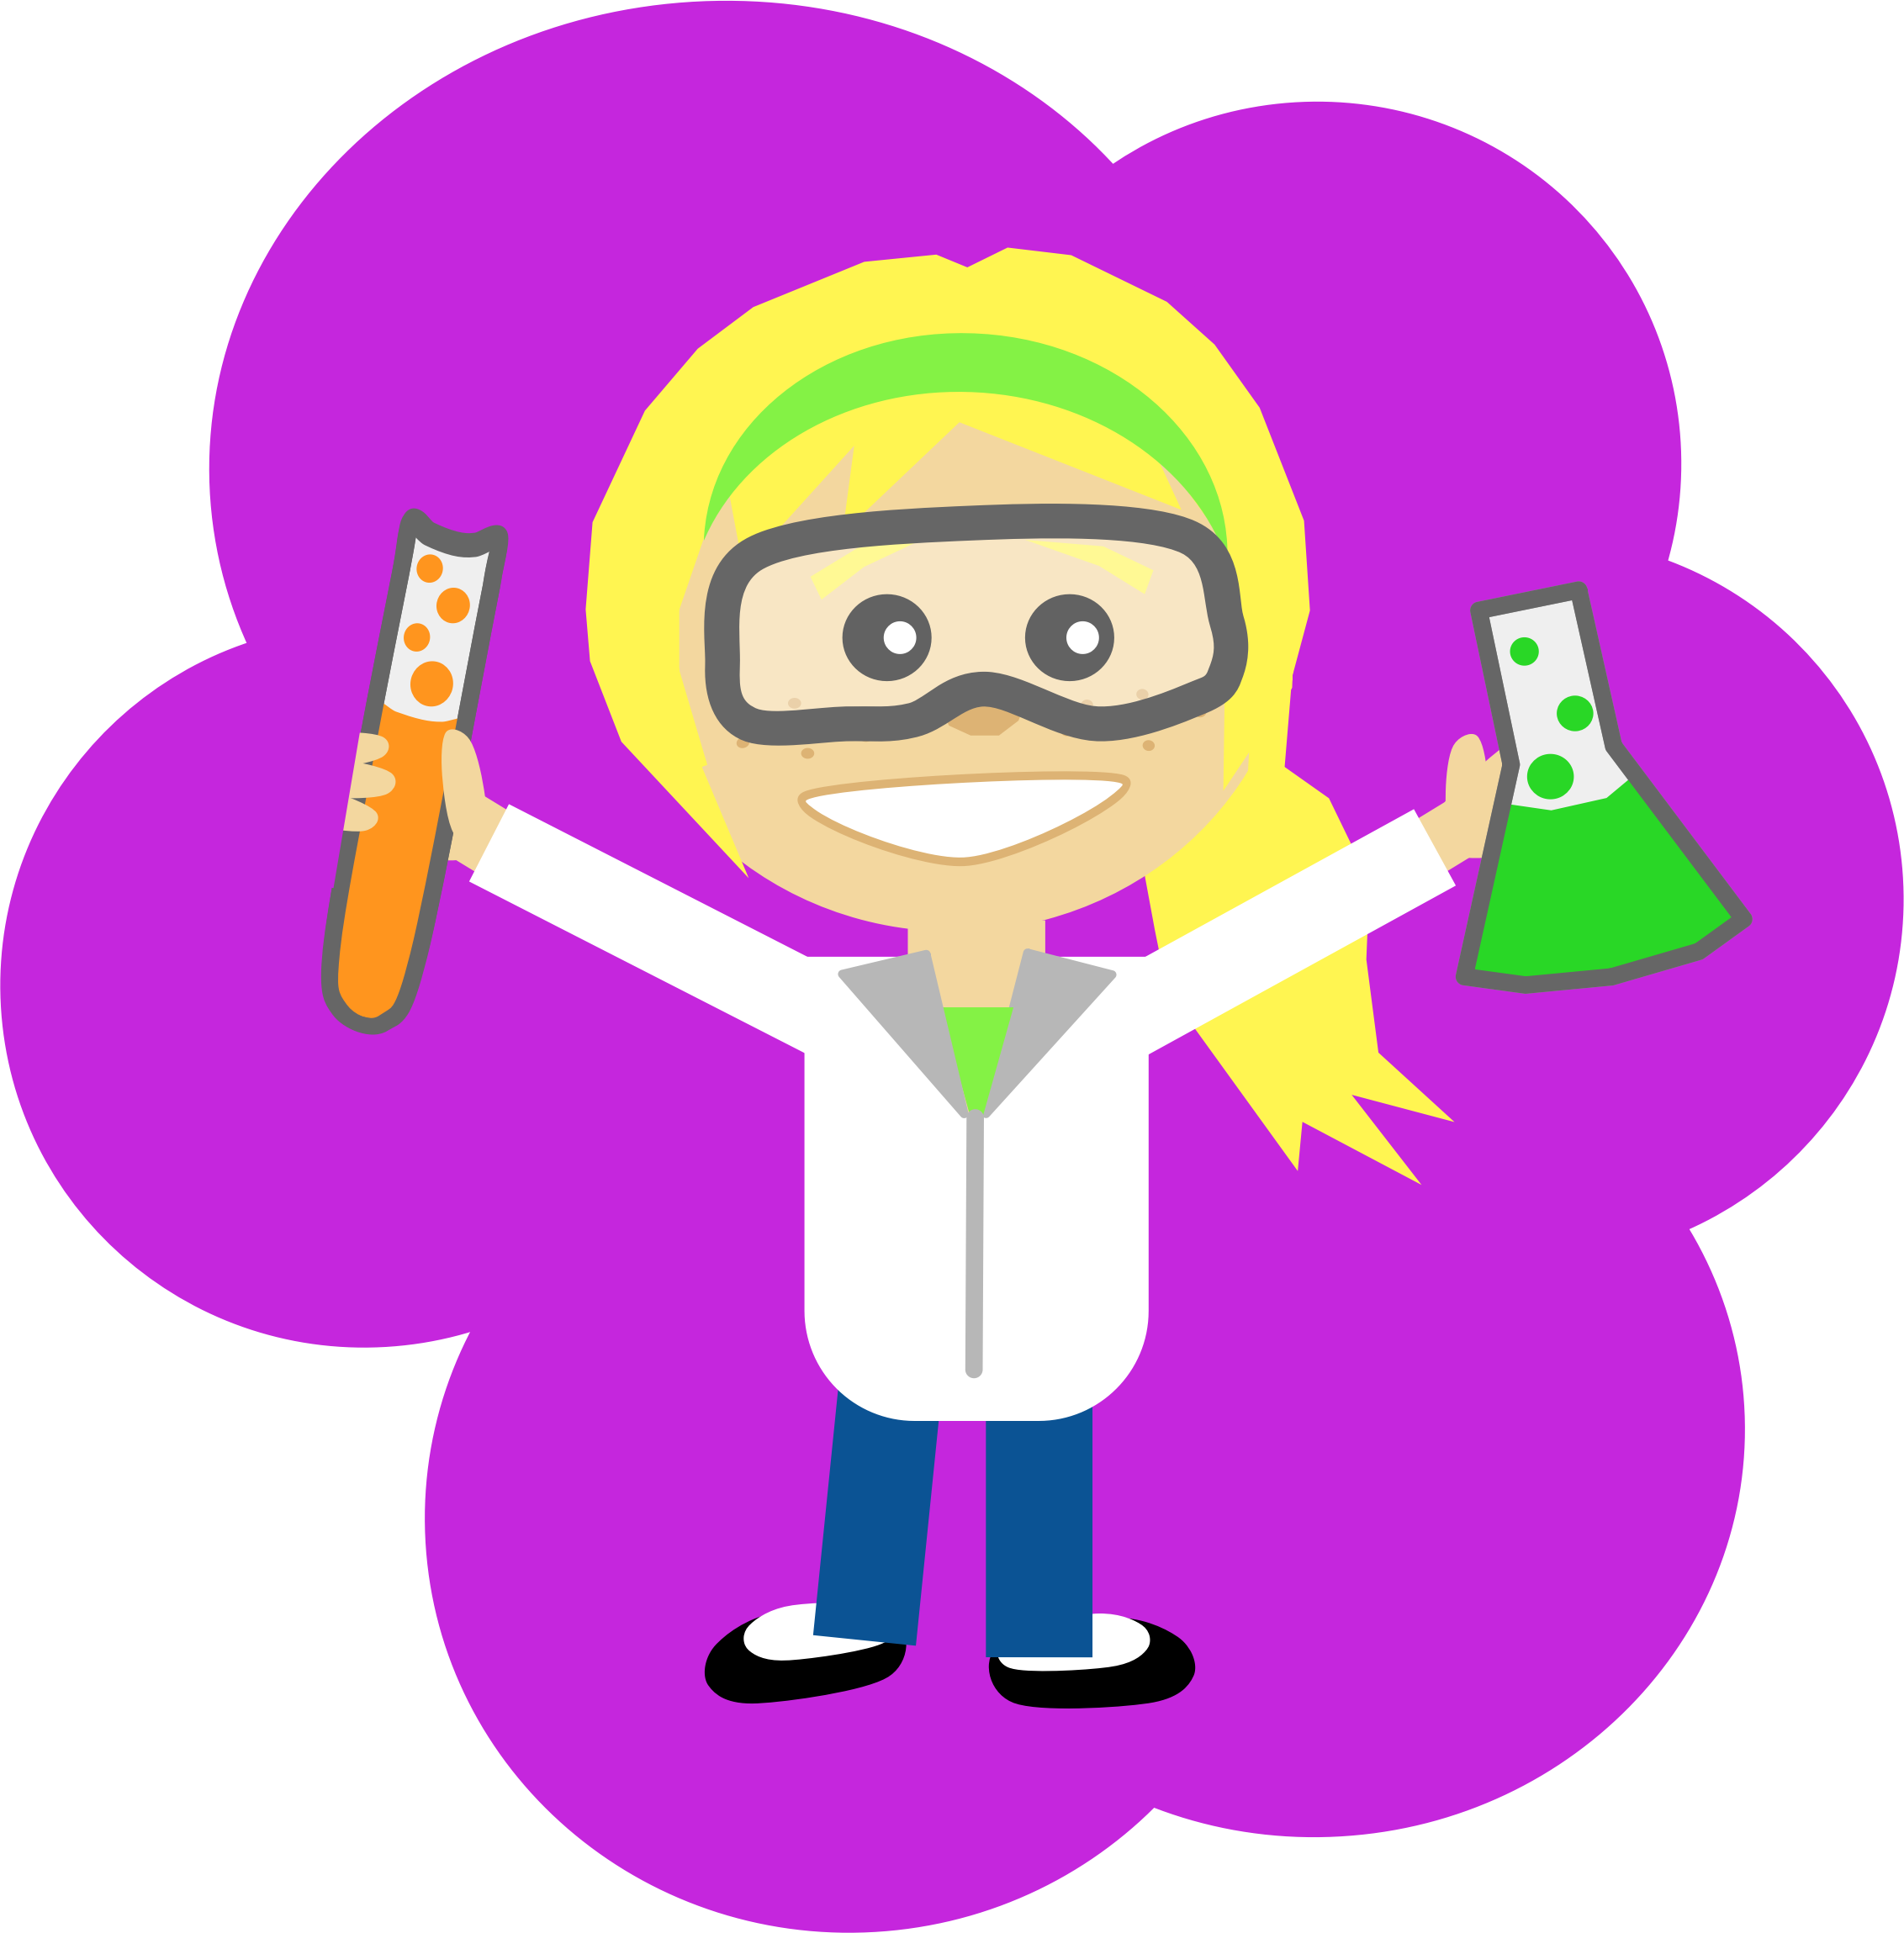 Girls clipart ponytail. Science girl with big